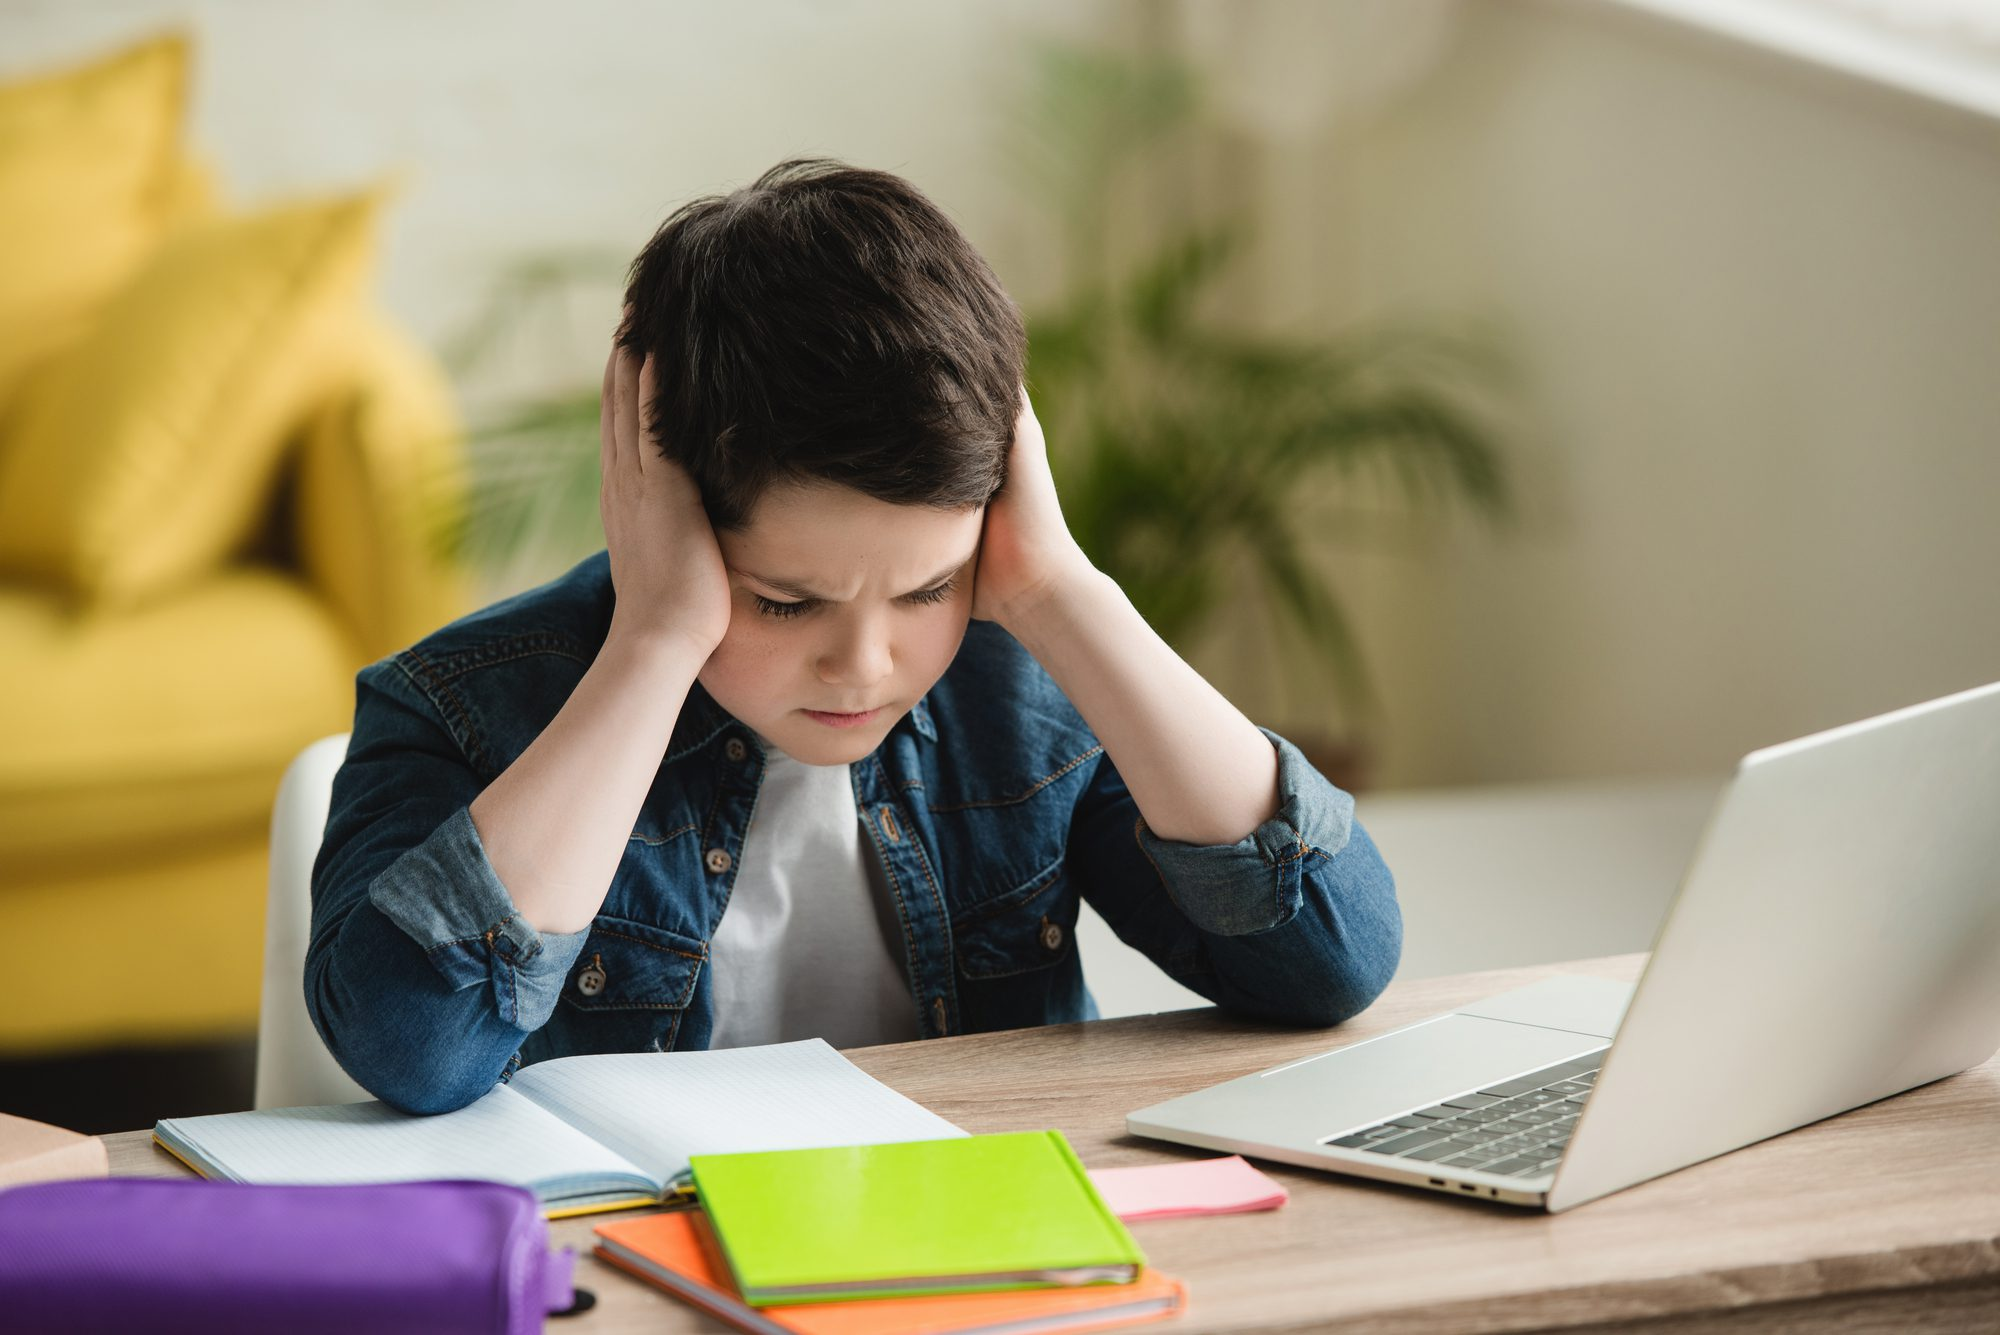 young boy sitting at desk with laptop, notecards, and book